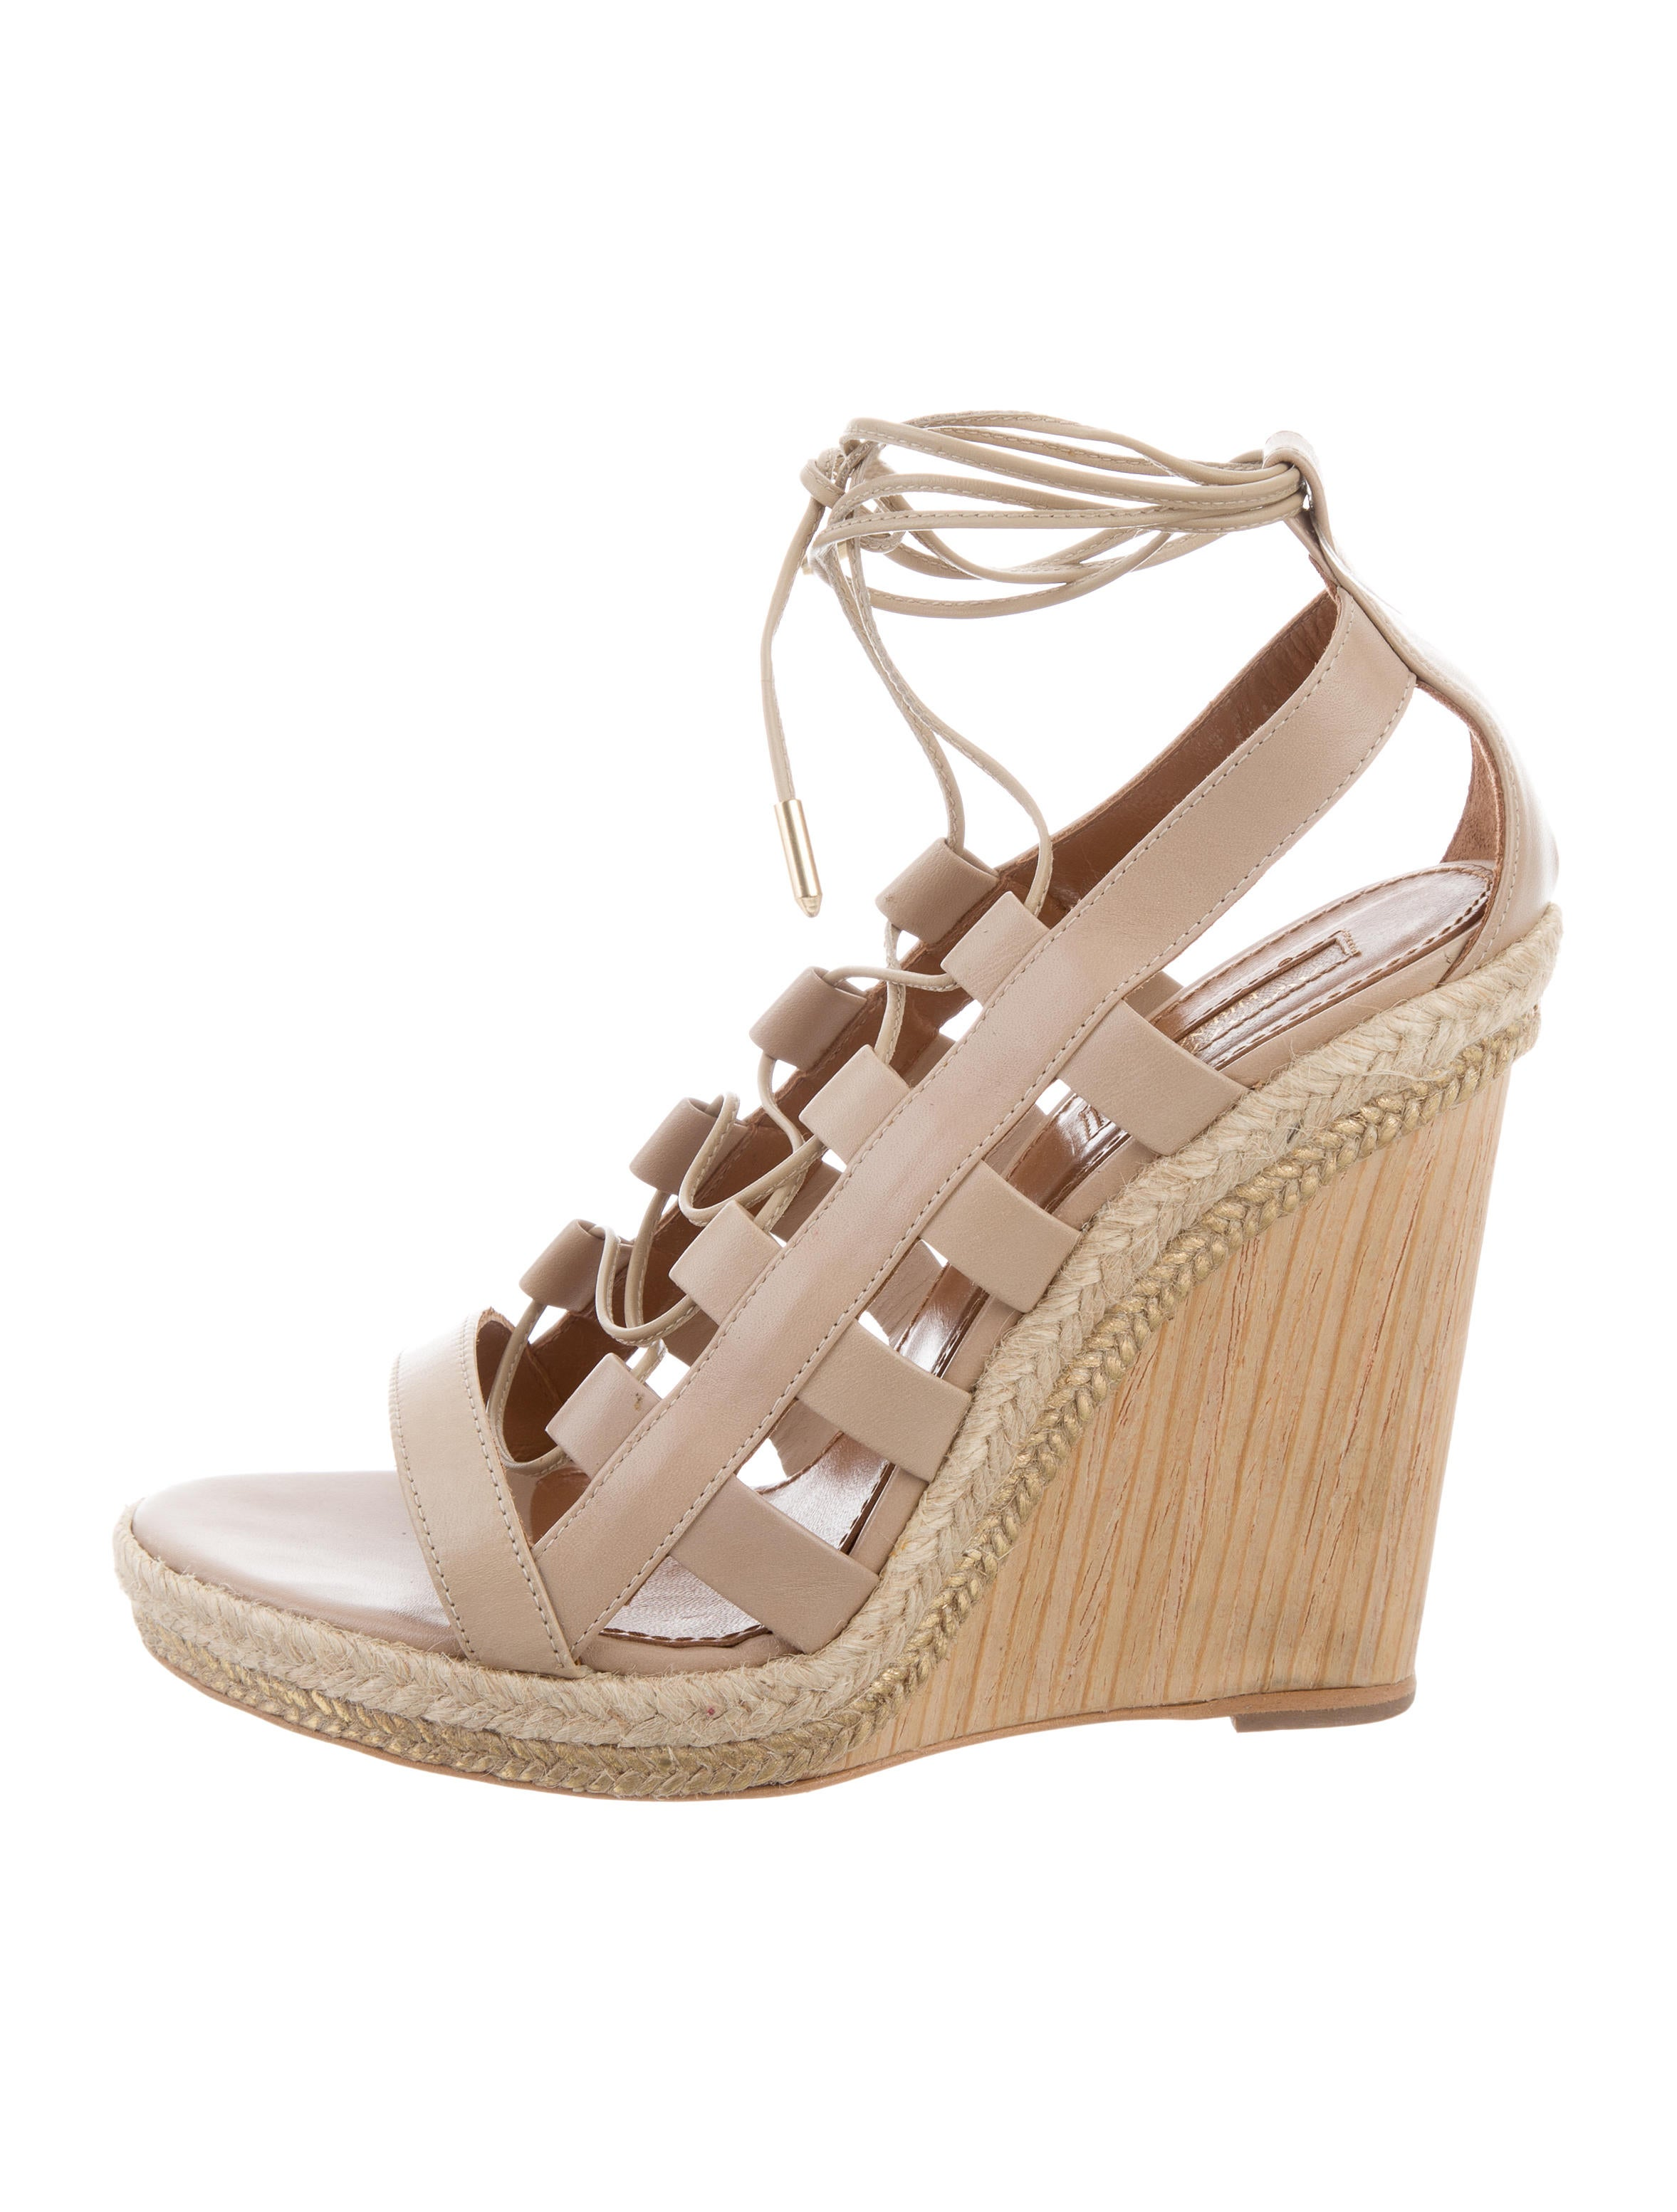 Aquazzura Amazon Wedge Sandals - Shoes - AQZ24165 | The ...